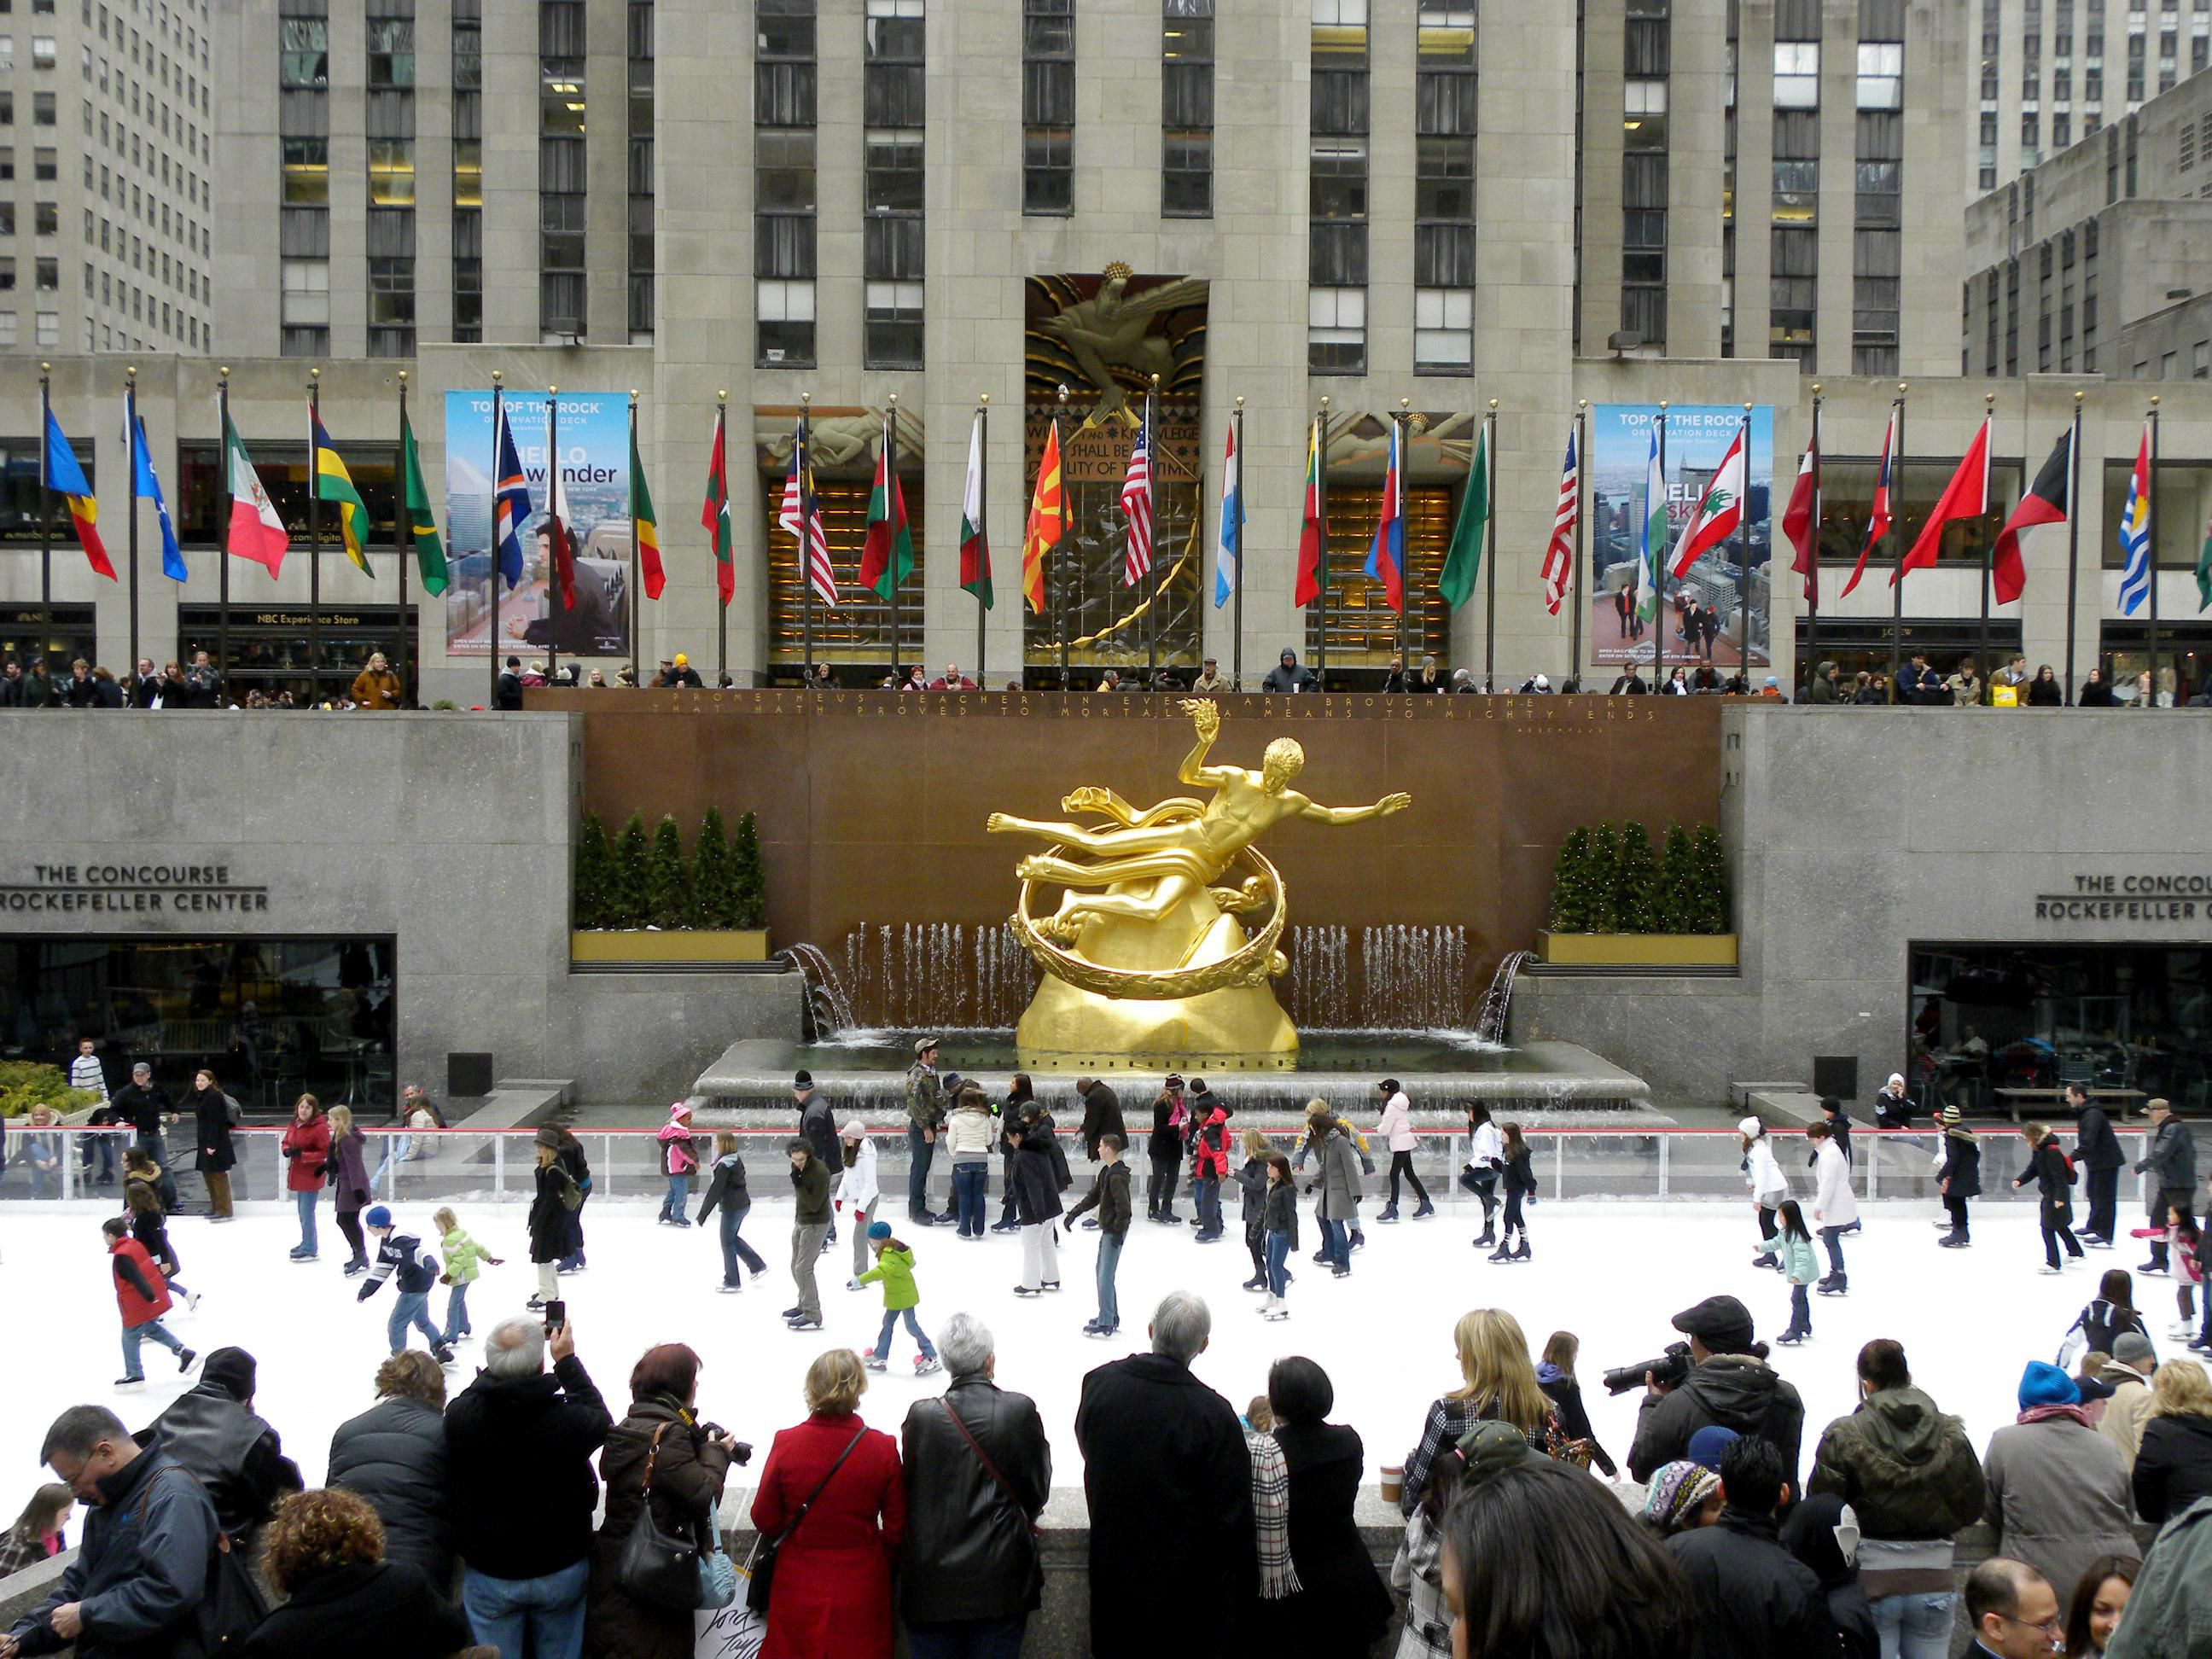 Your Guide to Skating at the Ice Rink in Rockefeller Center